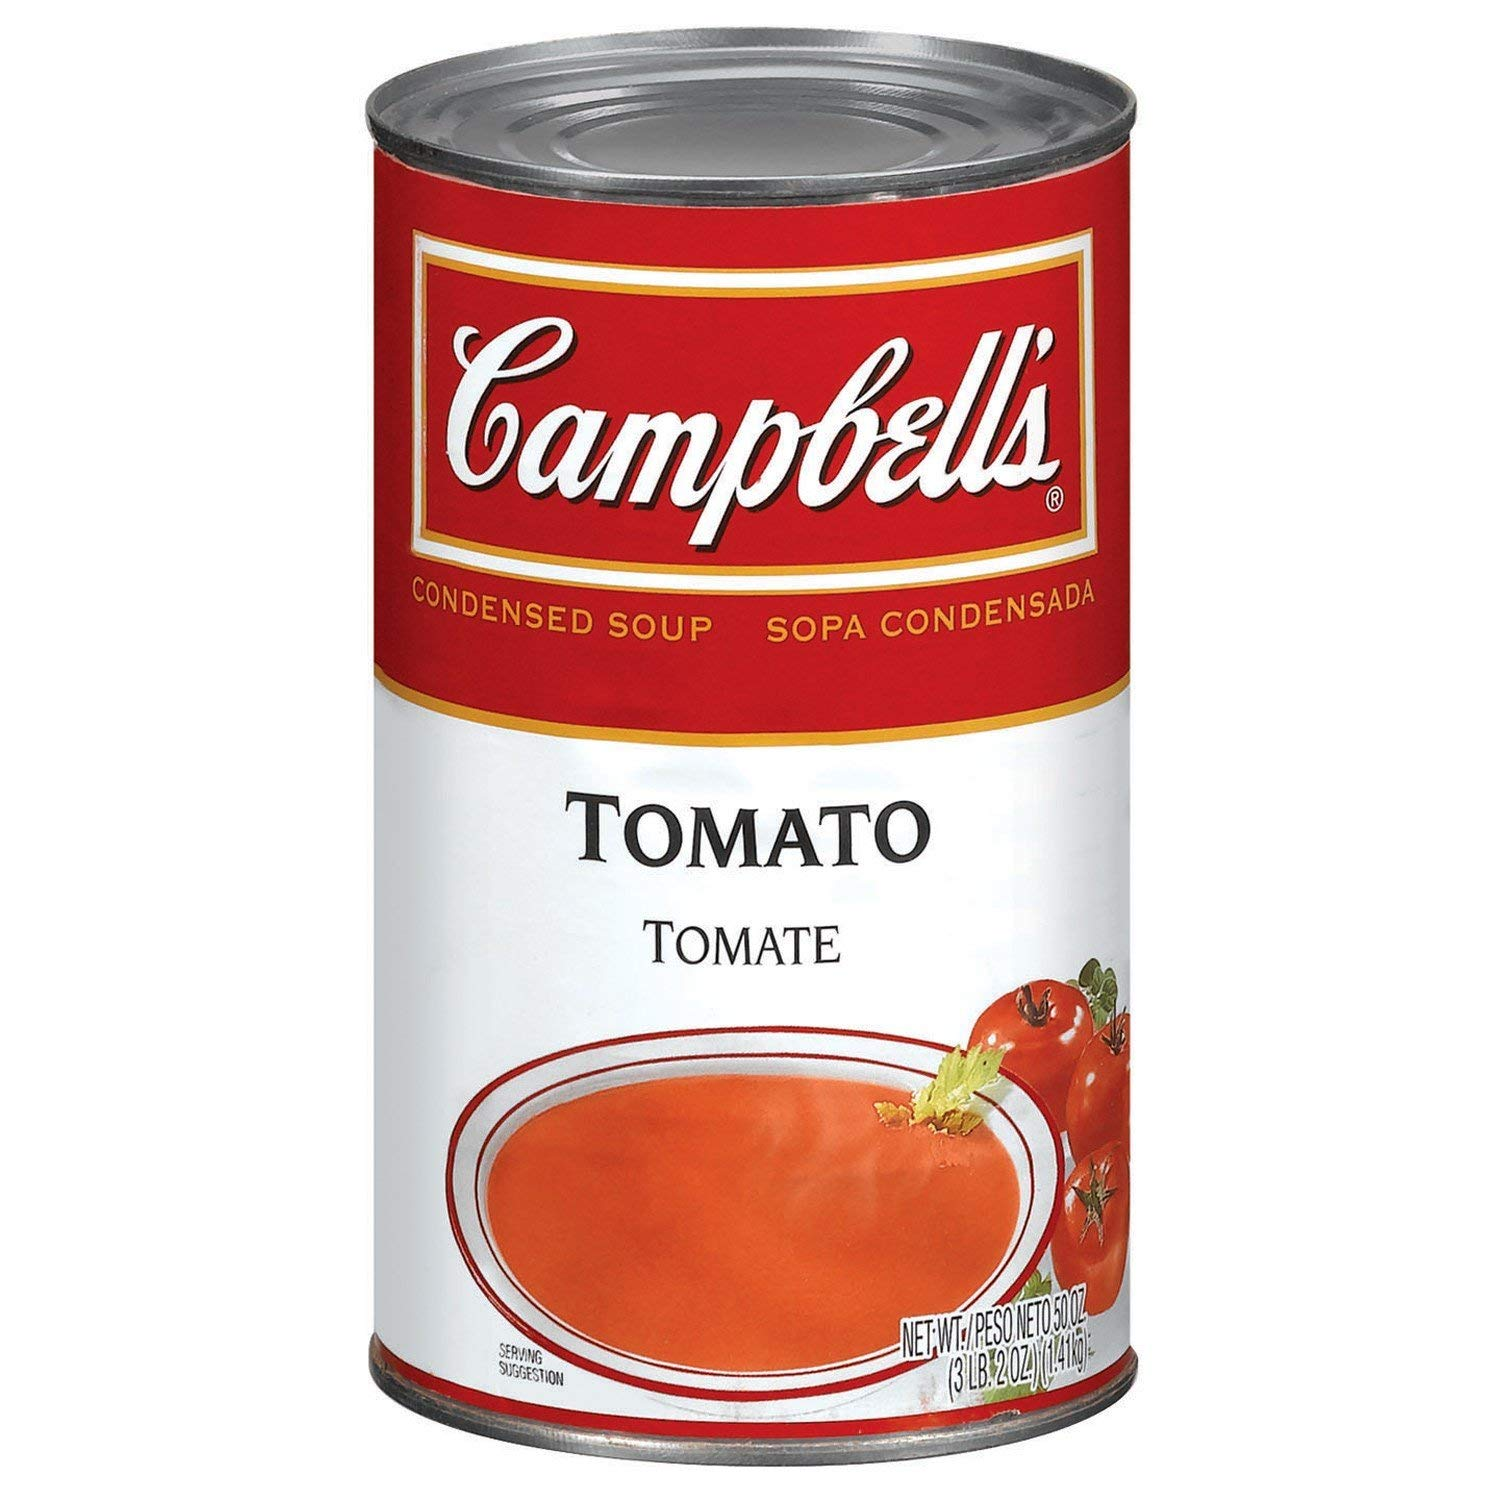 Max 64% Ranking TOP5 OFF Campbell's Tomato Soup 50 pack of 12 OZ